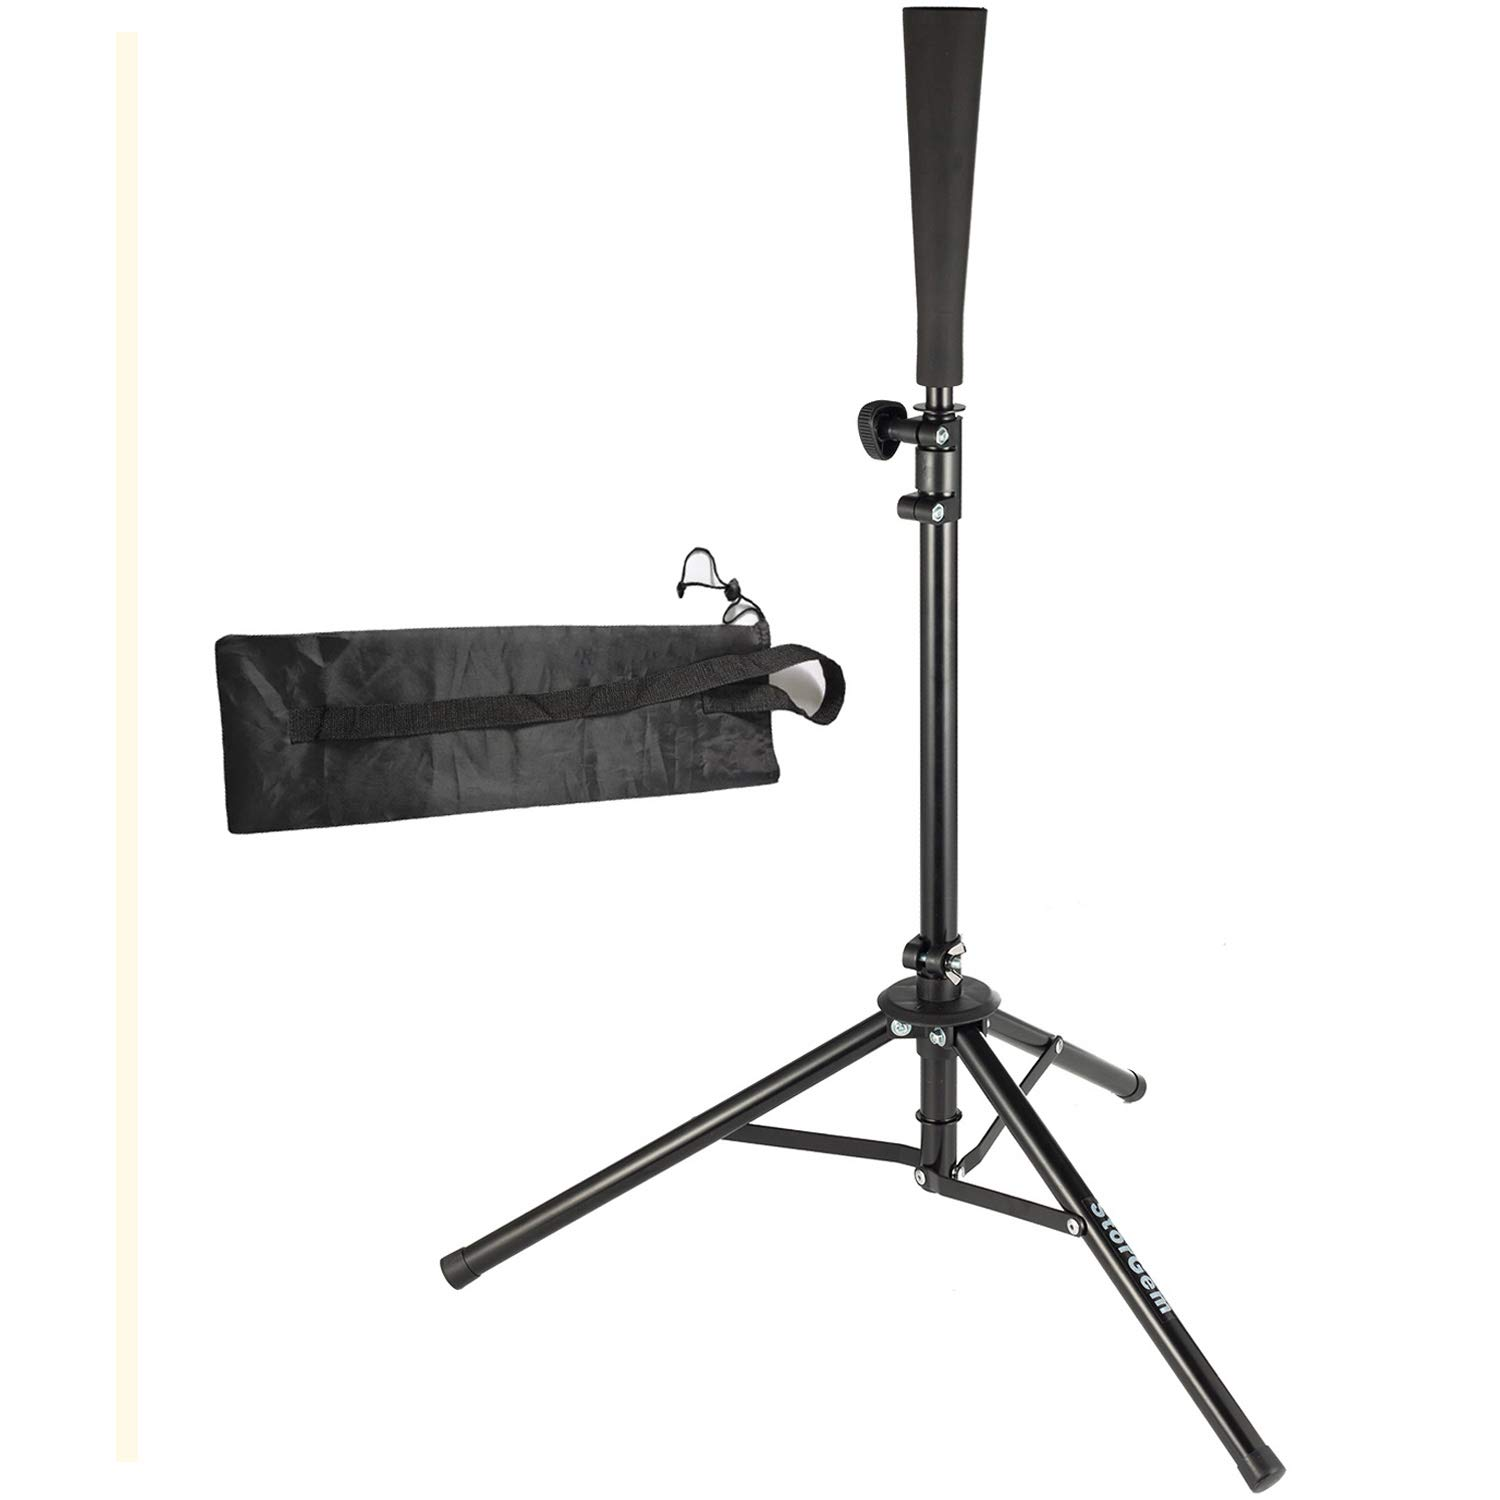 Storgem Batting Baseball tee Softball Adjustable Tripod Stand Tee for Hitting Training Practice,Carrying Bag by Storgem